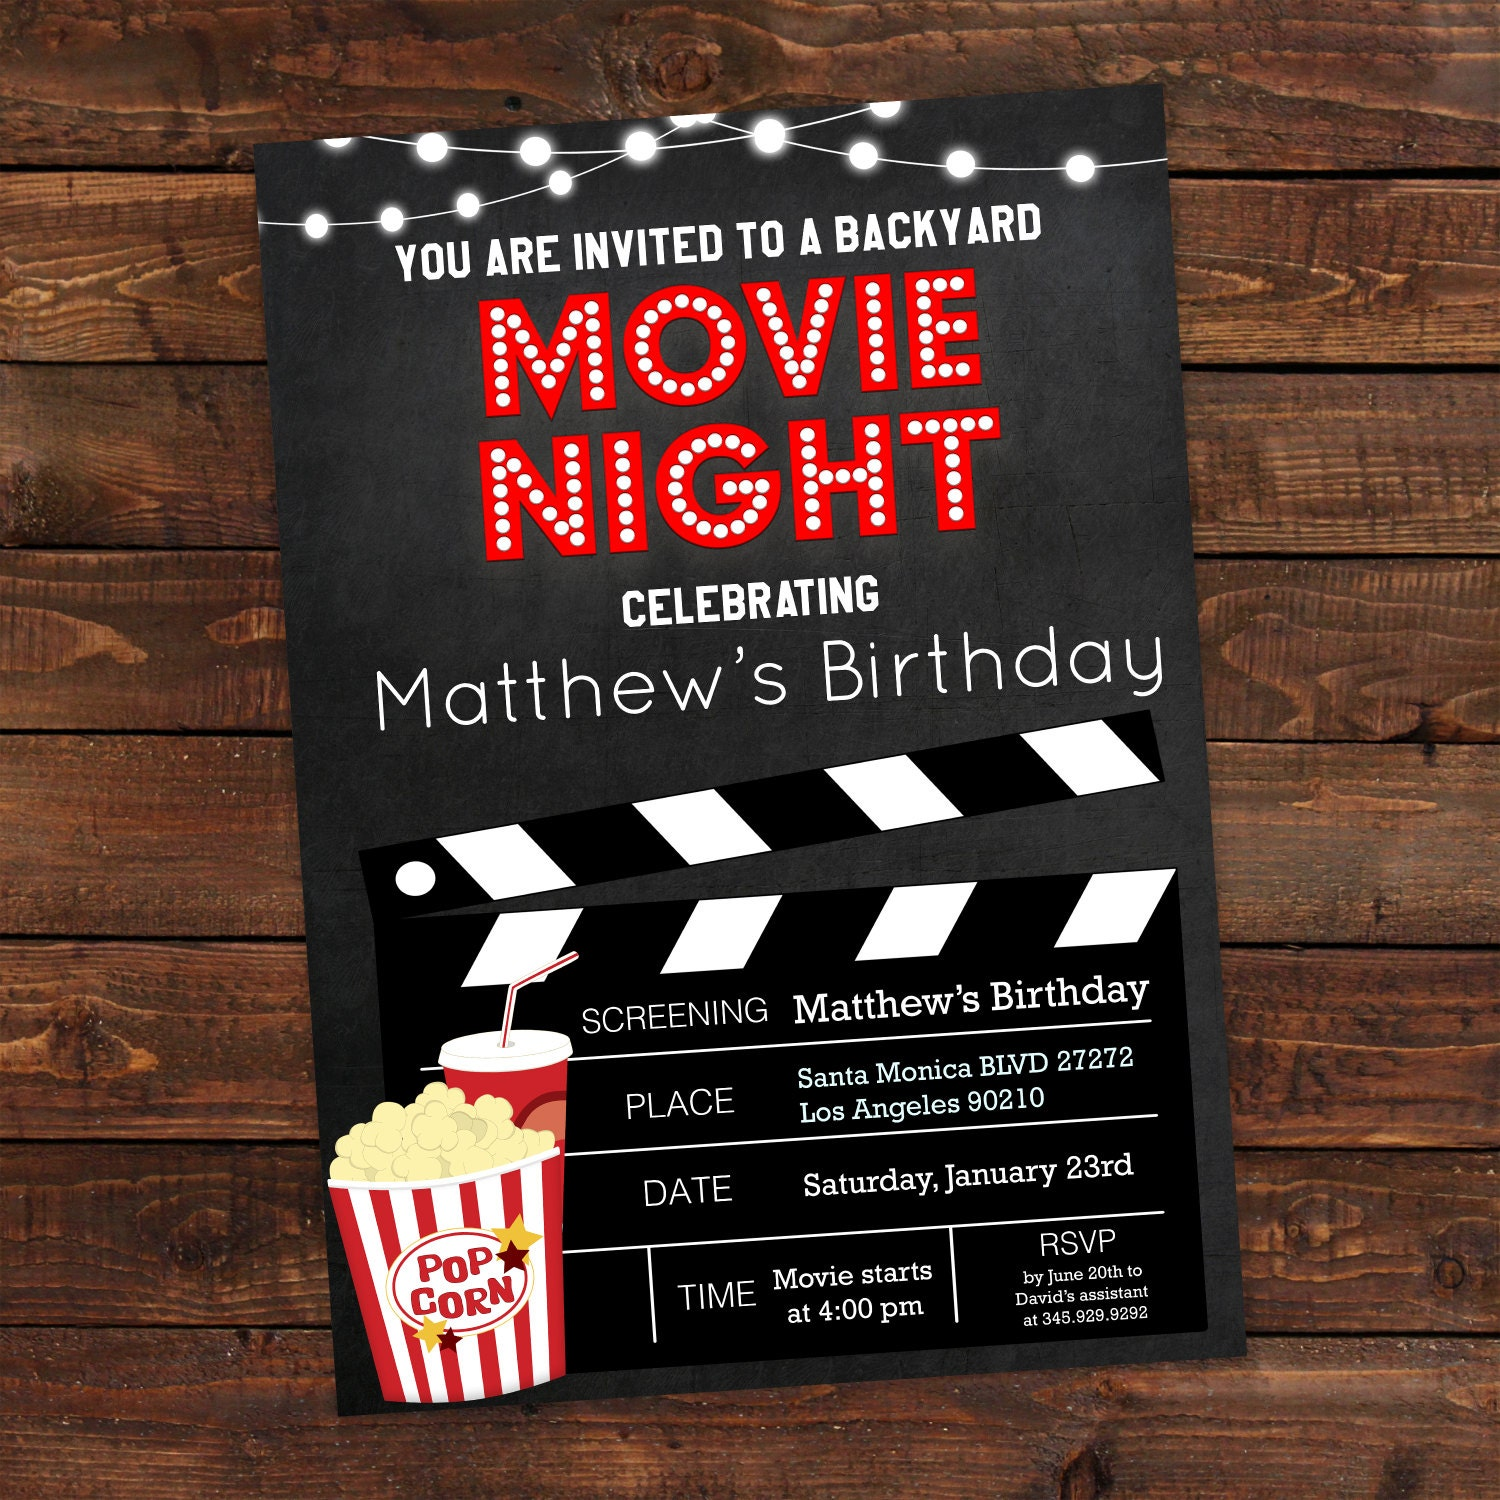 Exit Ticket Template in addition Free Printable Raffle Tickets Template Raffle Ticket Template Free Raffle Ticket Format moreover Gold CmjSSAe68vVAs together with Free Printable Bowling Birthday Invitations together with Golden Ticket Template For Word. on movie ticket template editable